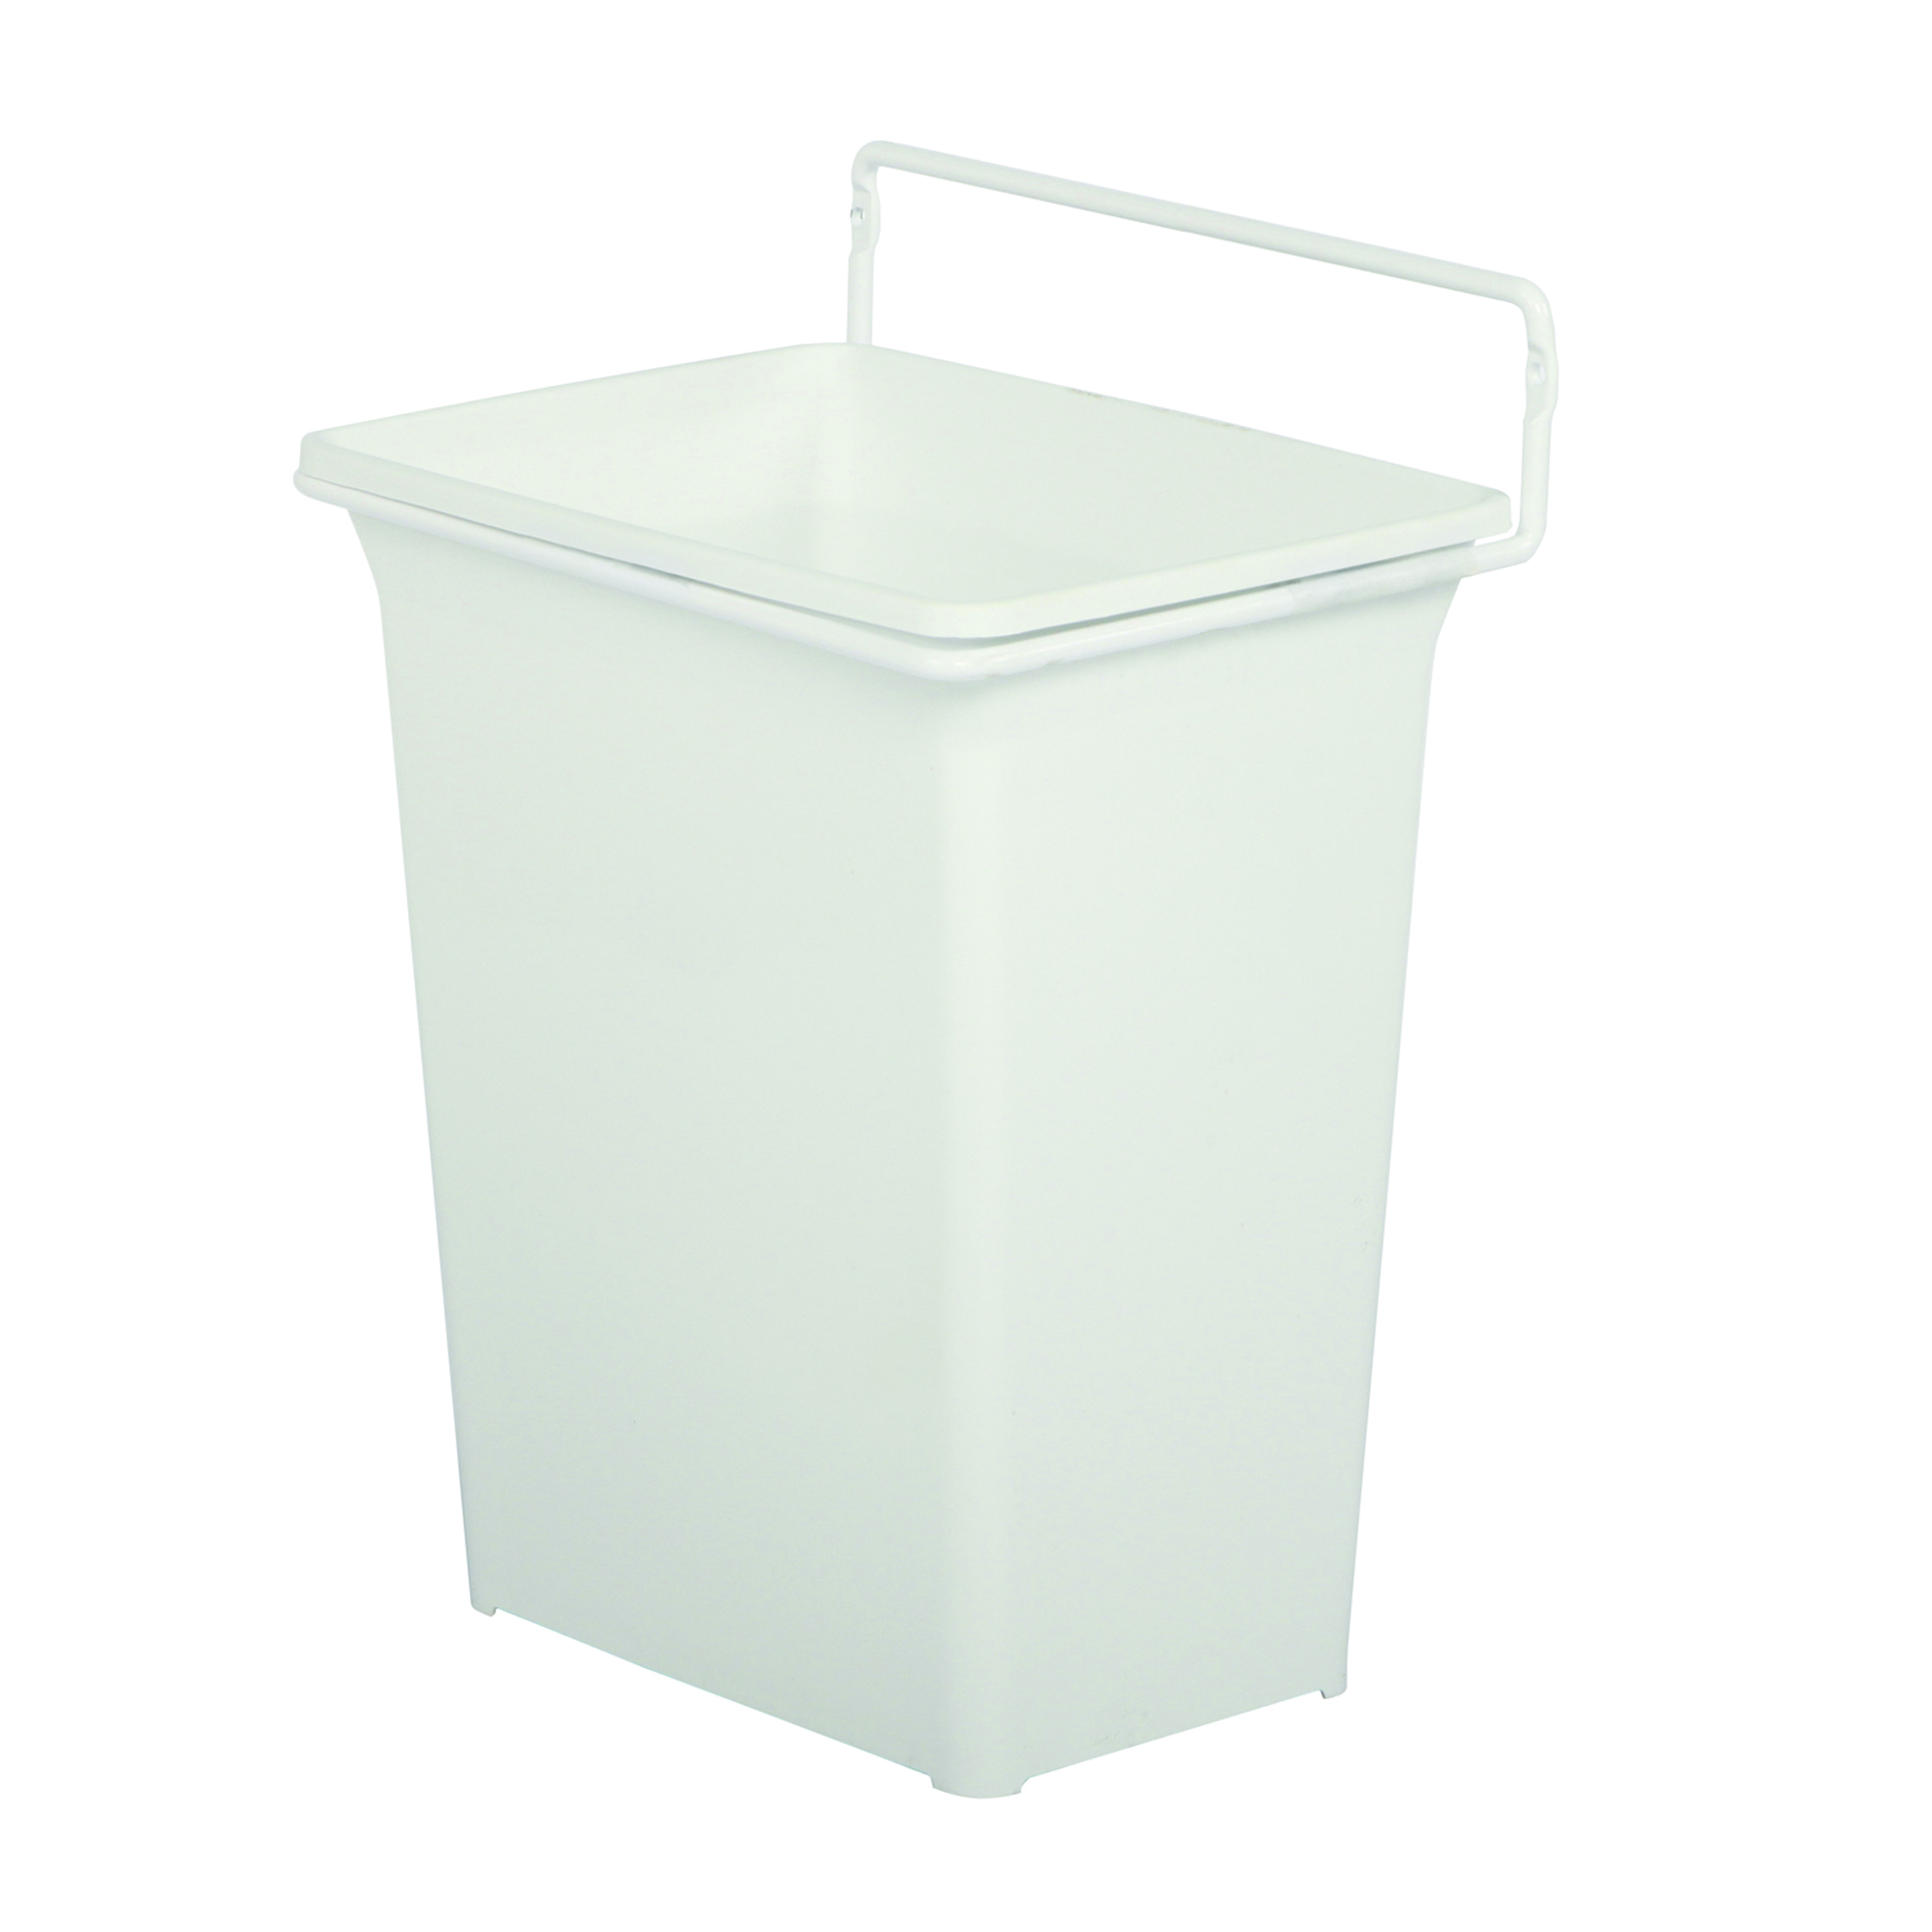 Real Solutions Single 9qt Door-mounted Waste & Recyling Unit, White